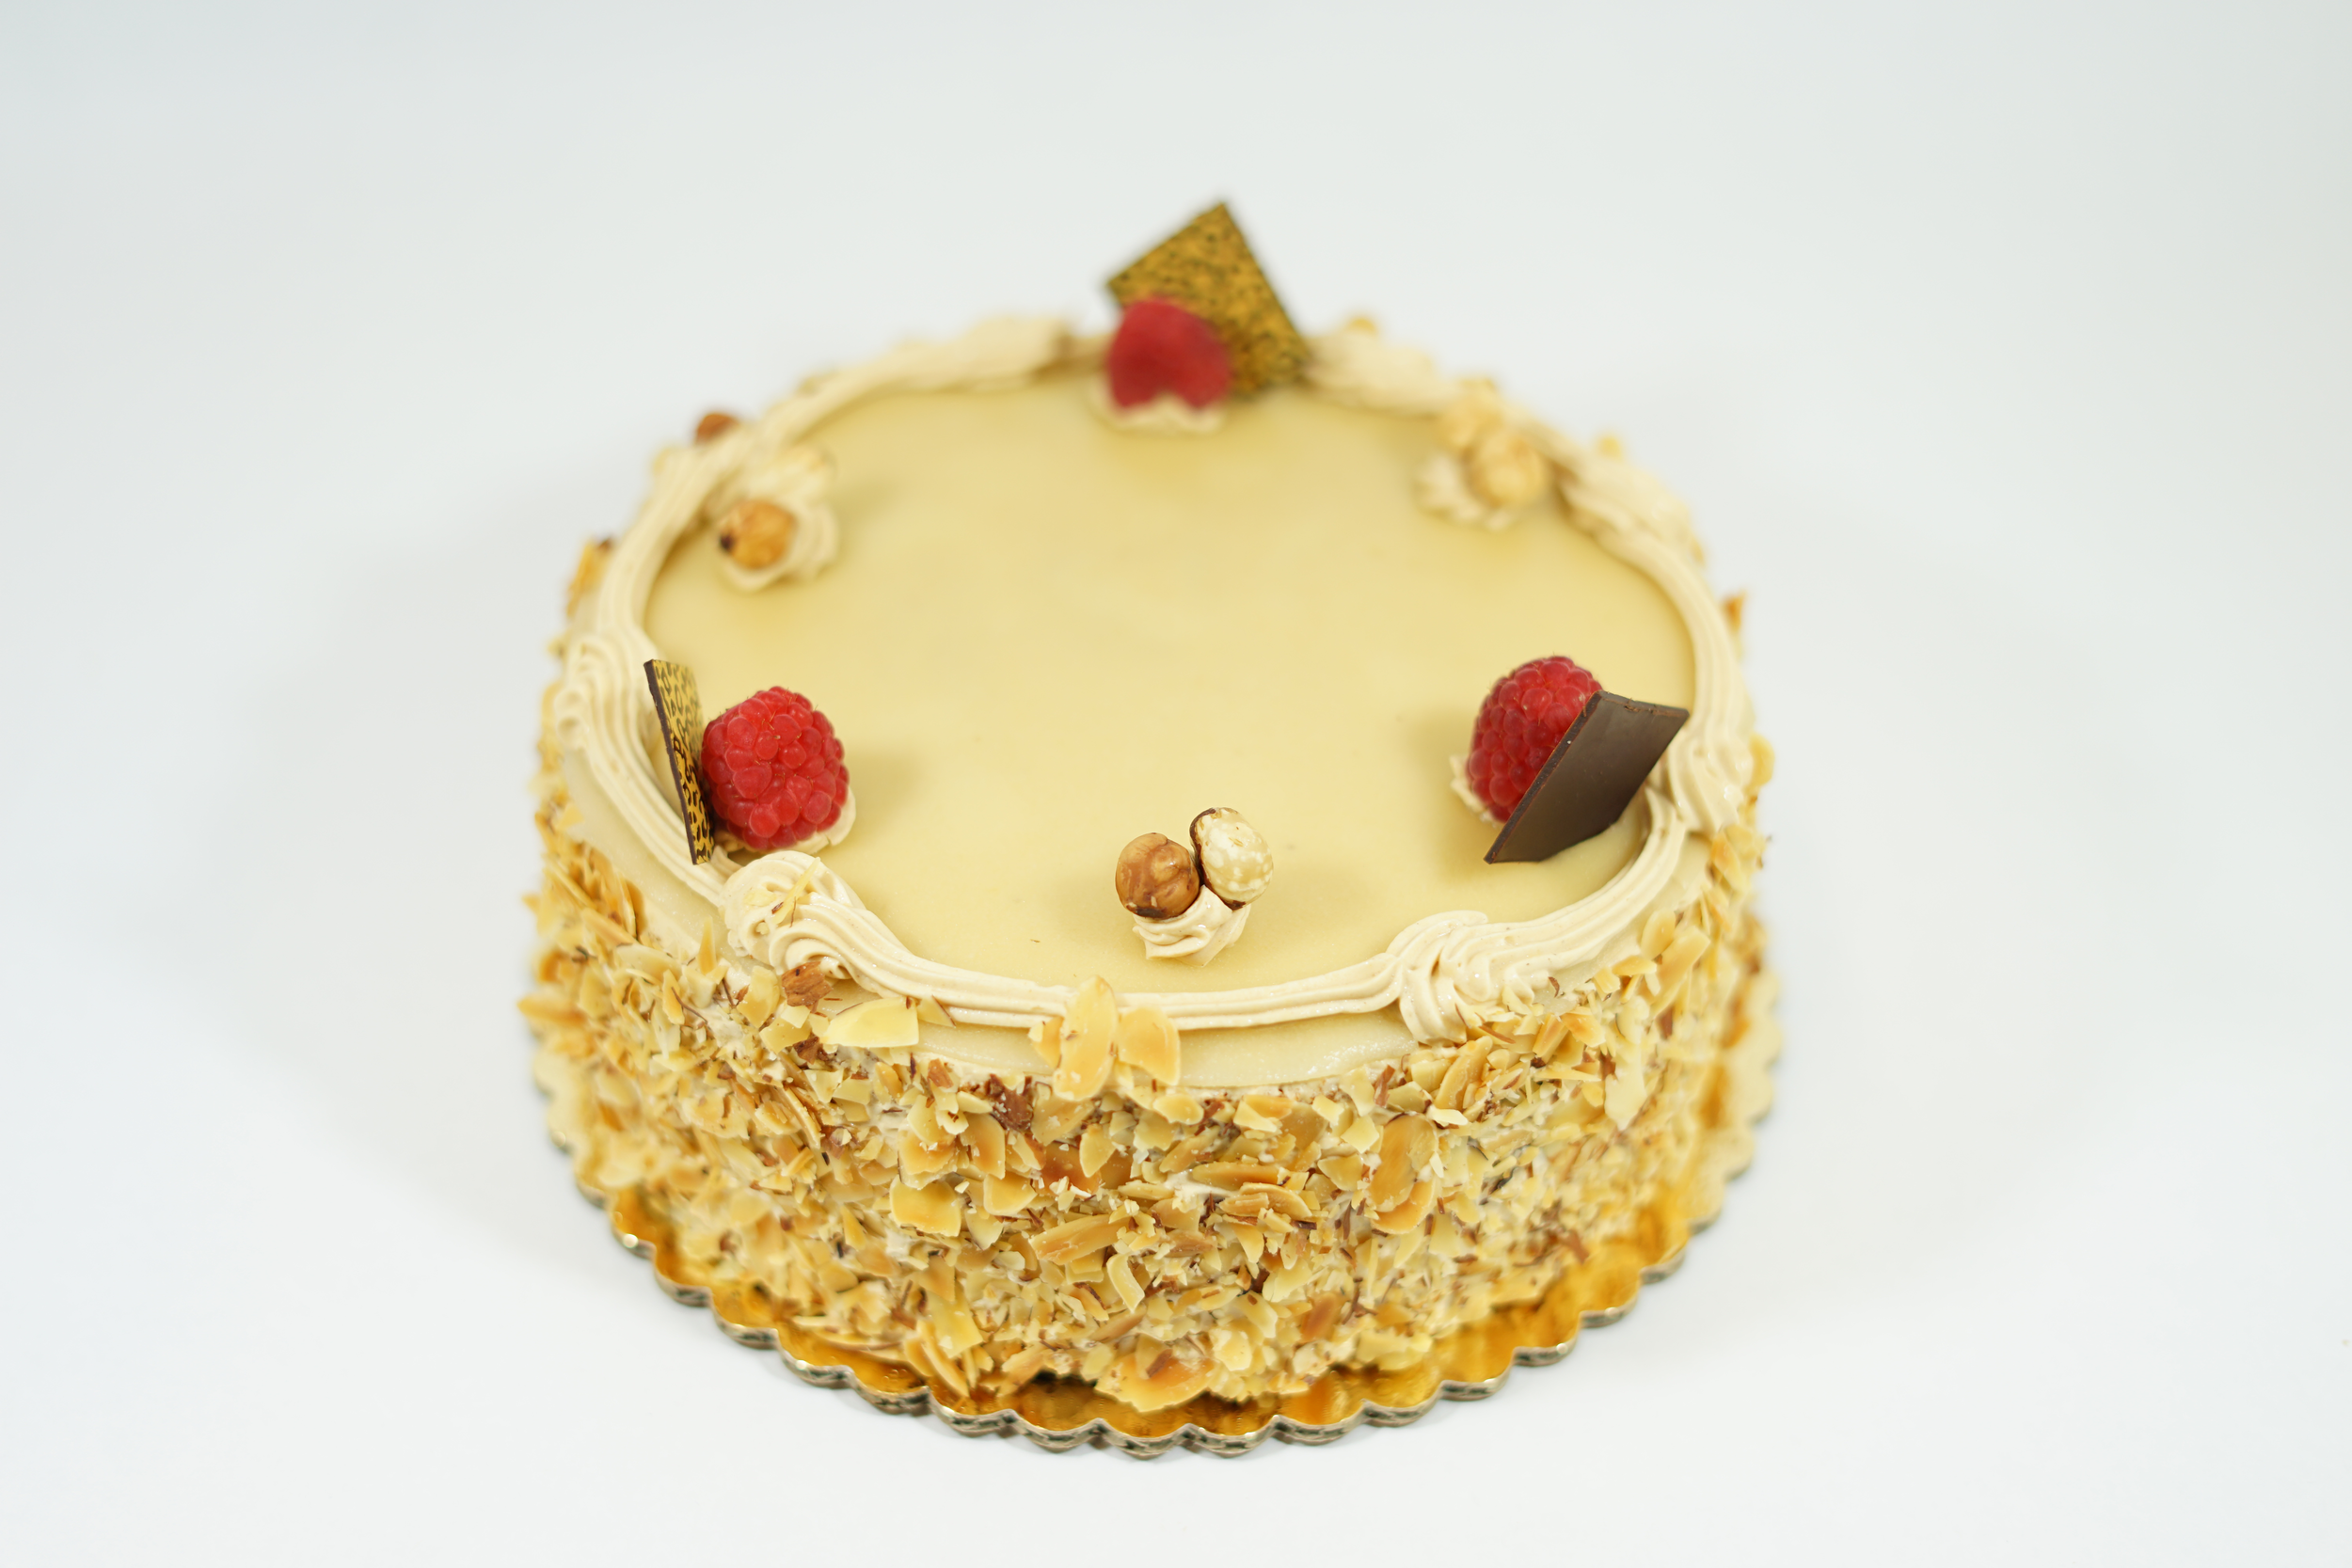 Hazelnut - Genoise sponge cake with cognac syrup, hazelnut chocolate mousse, and almond paste filling. Iced with a hazelnut buttercream and decorated with almond slivers on the side.